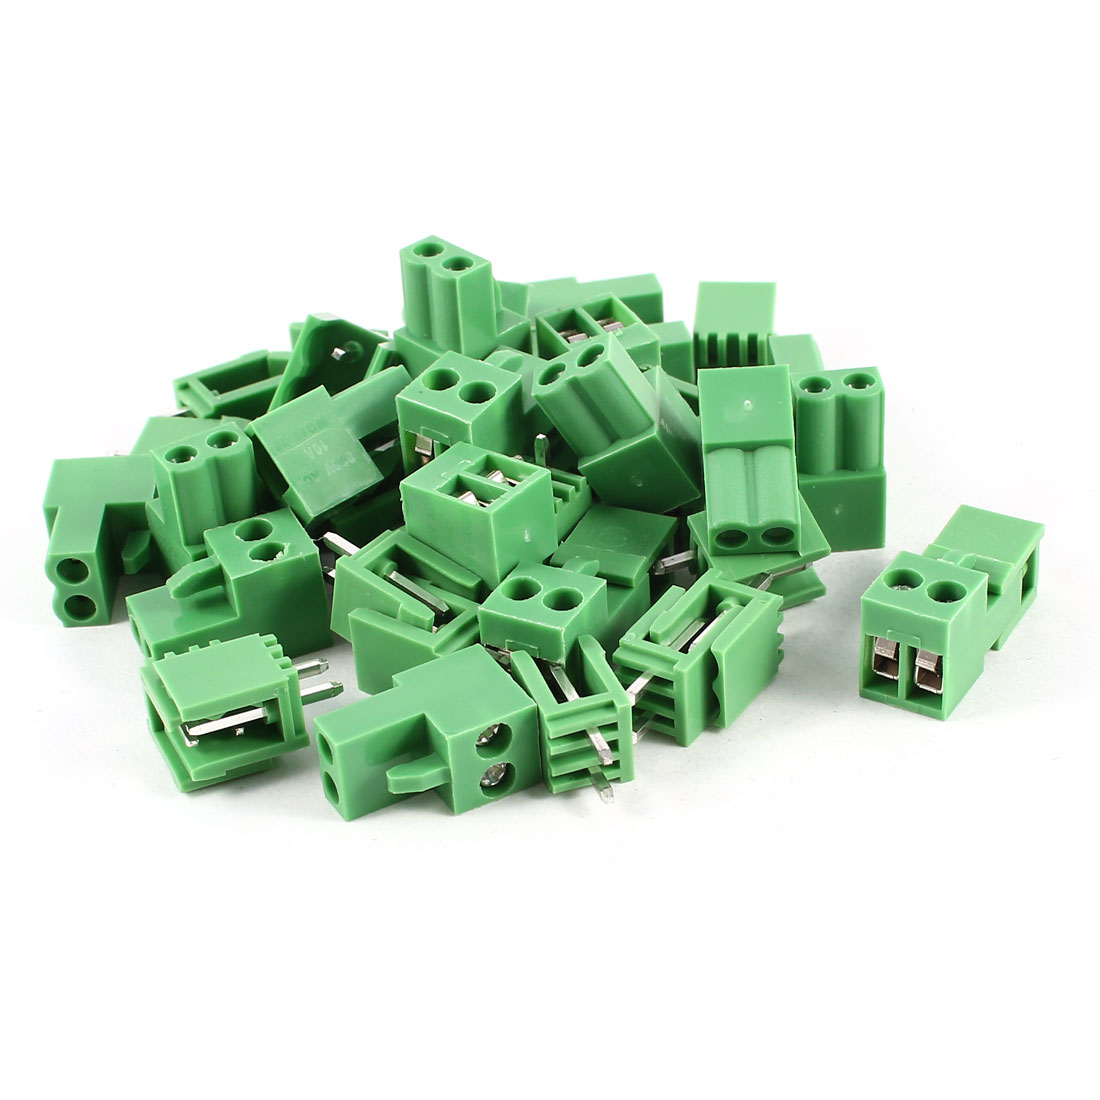 20 Pcs Green HT3.96 HT396K 3.96mm 2Position Screw Pluggable Terminal Block Connector 300V 10A